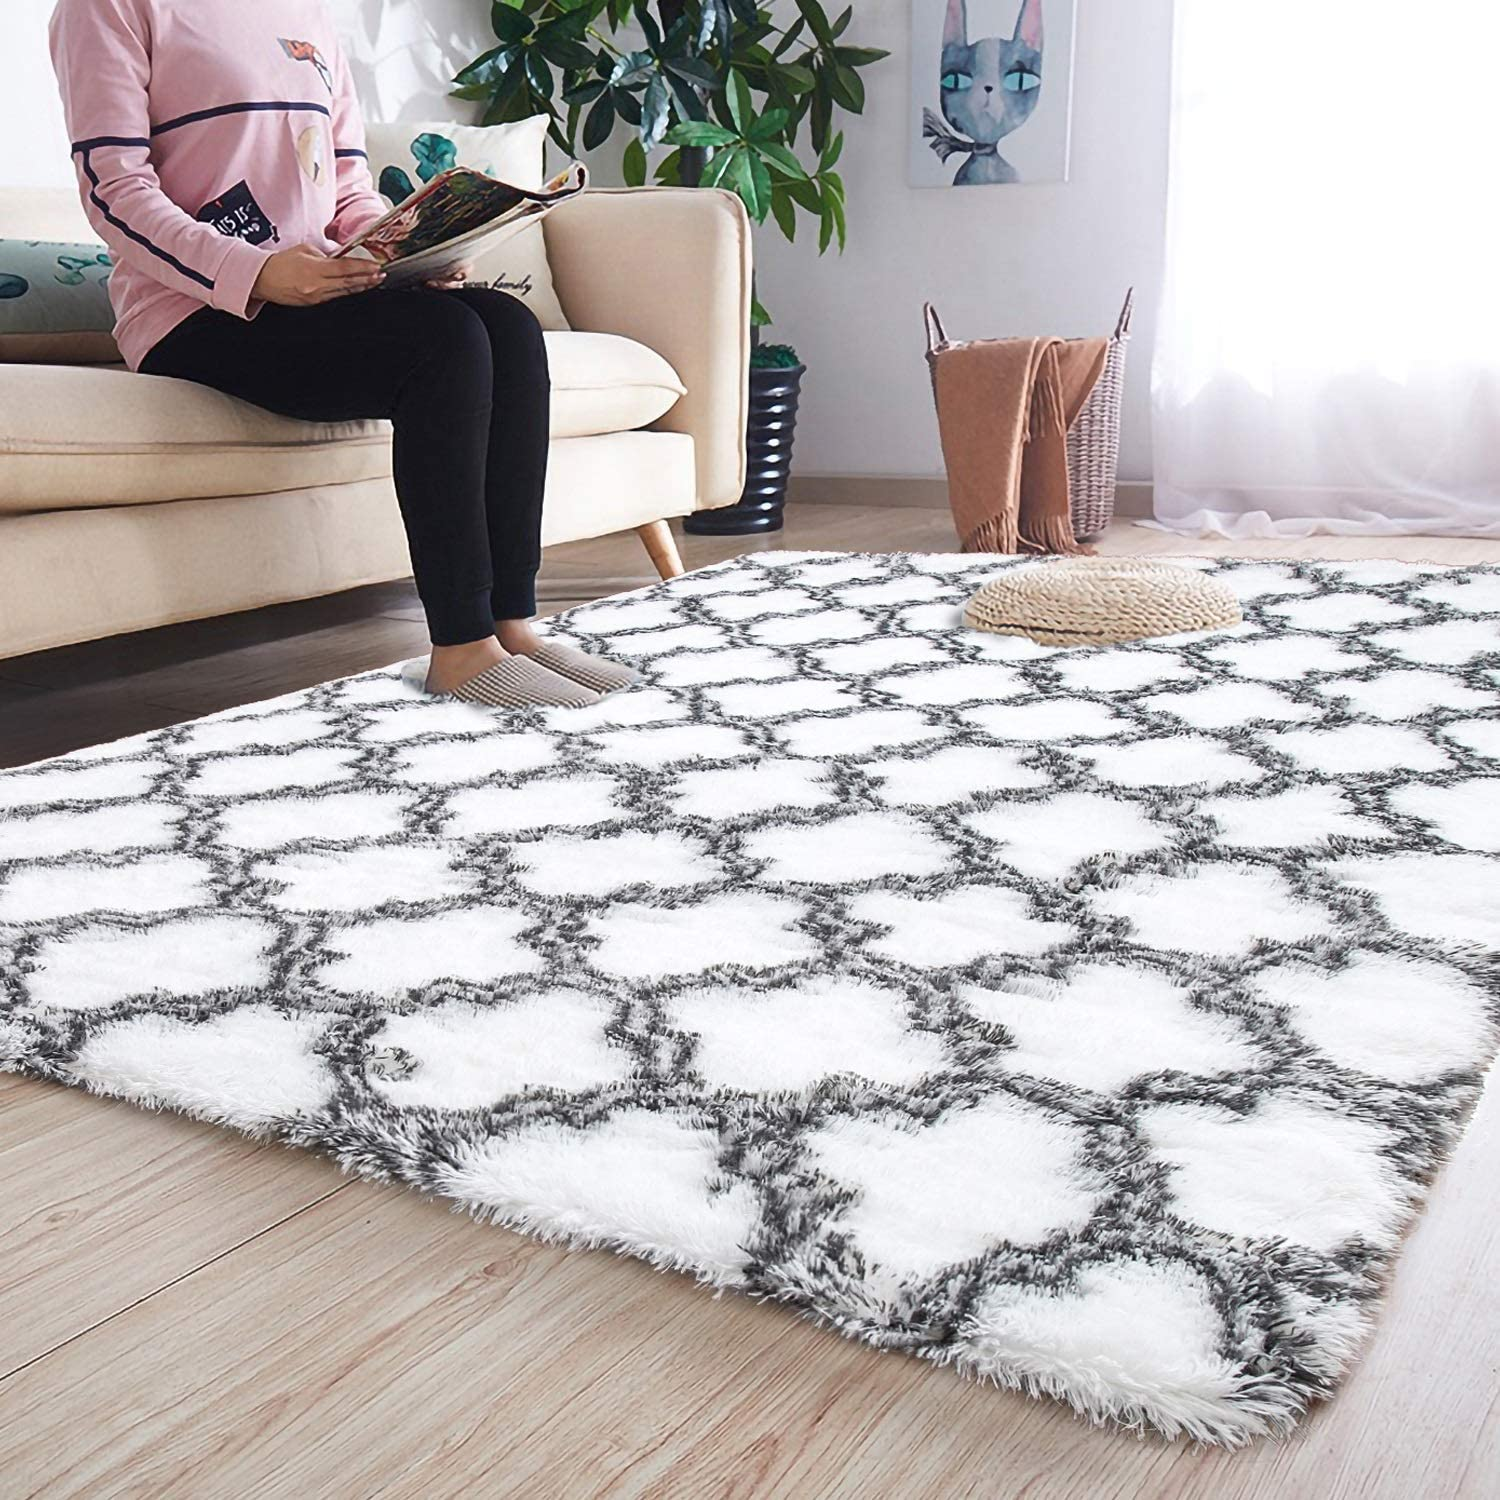 Noahas 5' x 8' Soft Area Rugs for Bedroom Living Room Shaggy Patterned Fluffy Carpets for Nursery Baby Rooms Silky Smooth Fuzzy Kids Play Mats Christmas Thanksgiving Holiday Decor Rug, White Trellis